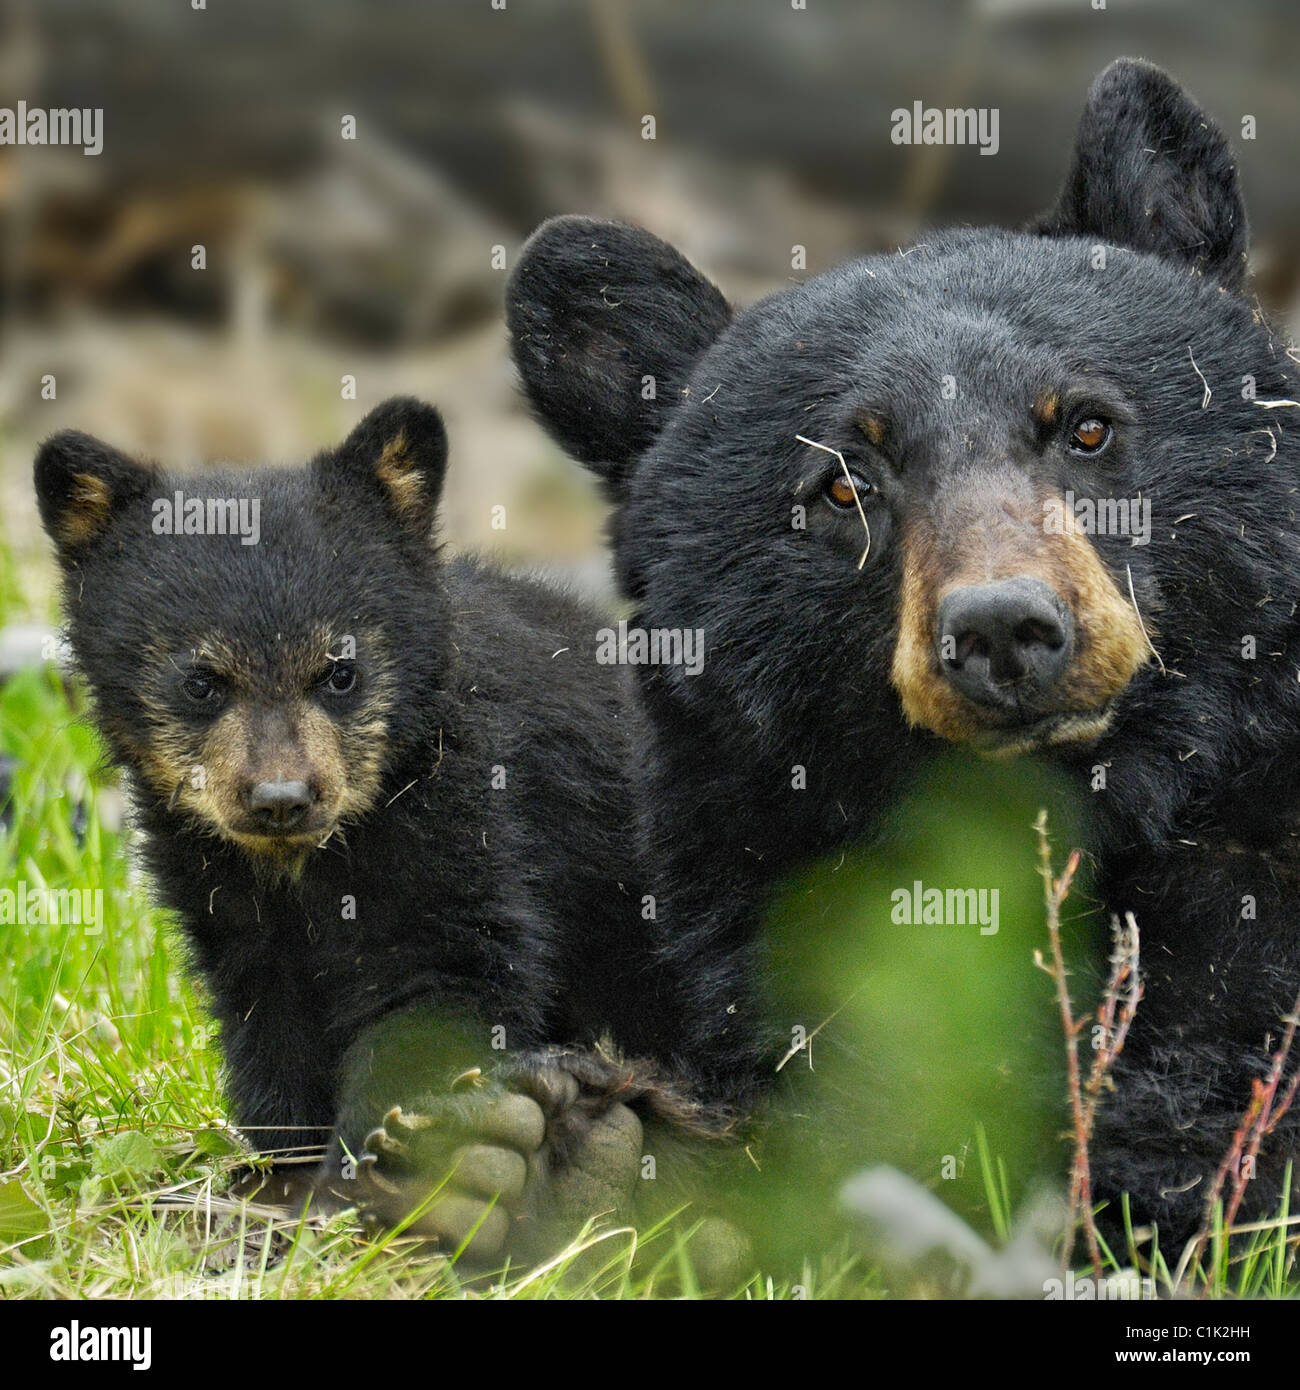 Mother Bear And Baby Bear Stock Photo: 35454541